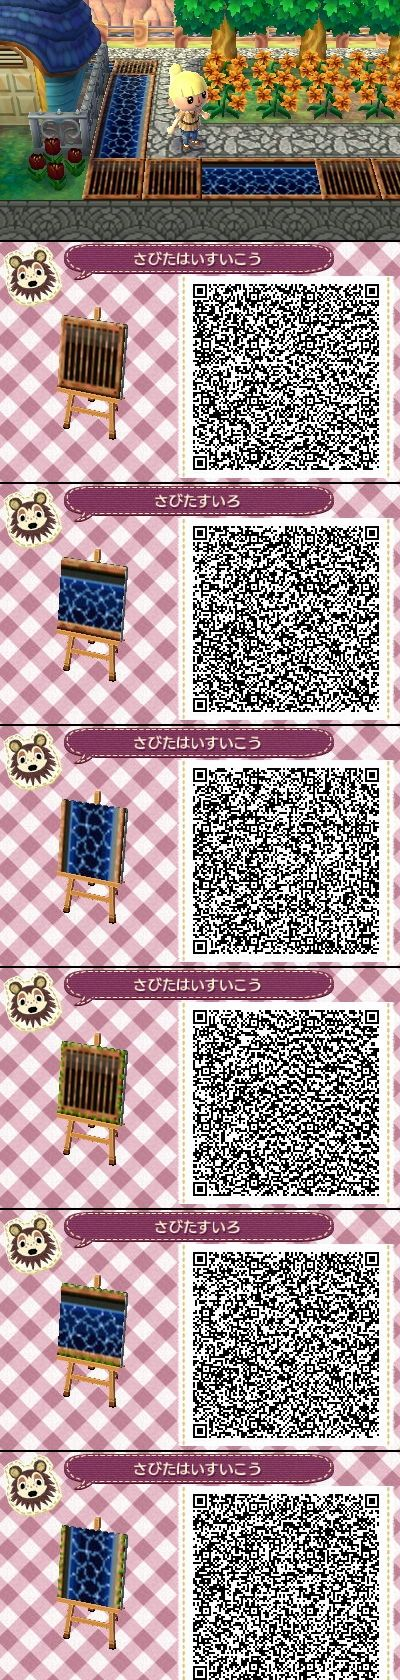 Animal crossing new leaf qr codes water outfits qr codes for Animal crossing boden qr